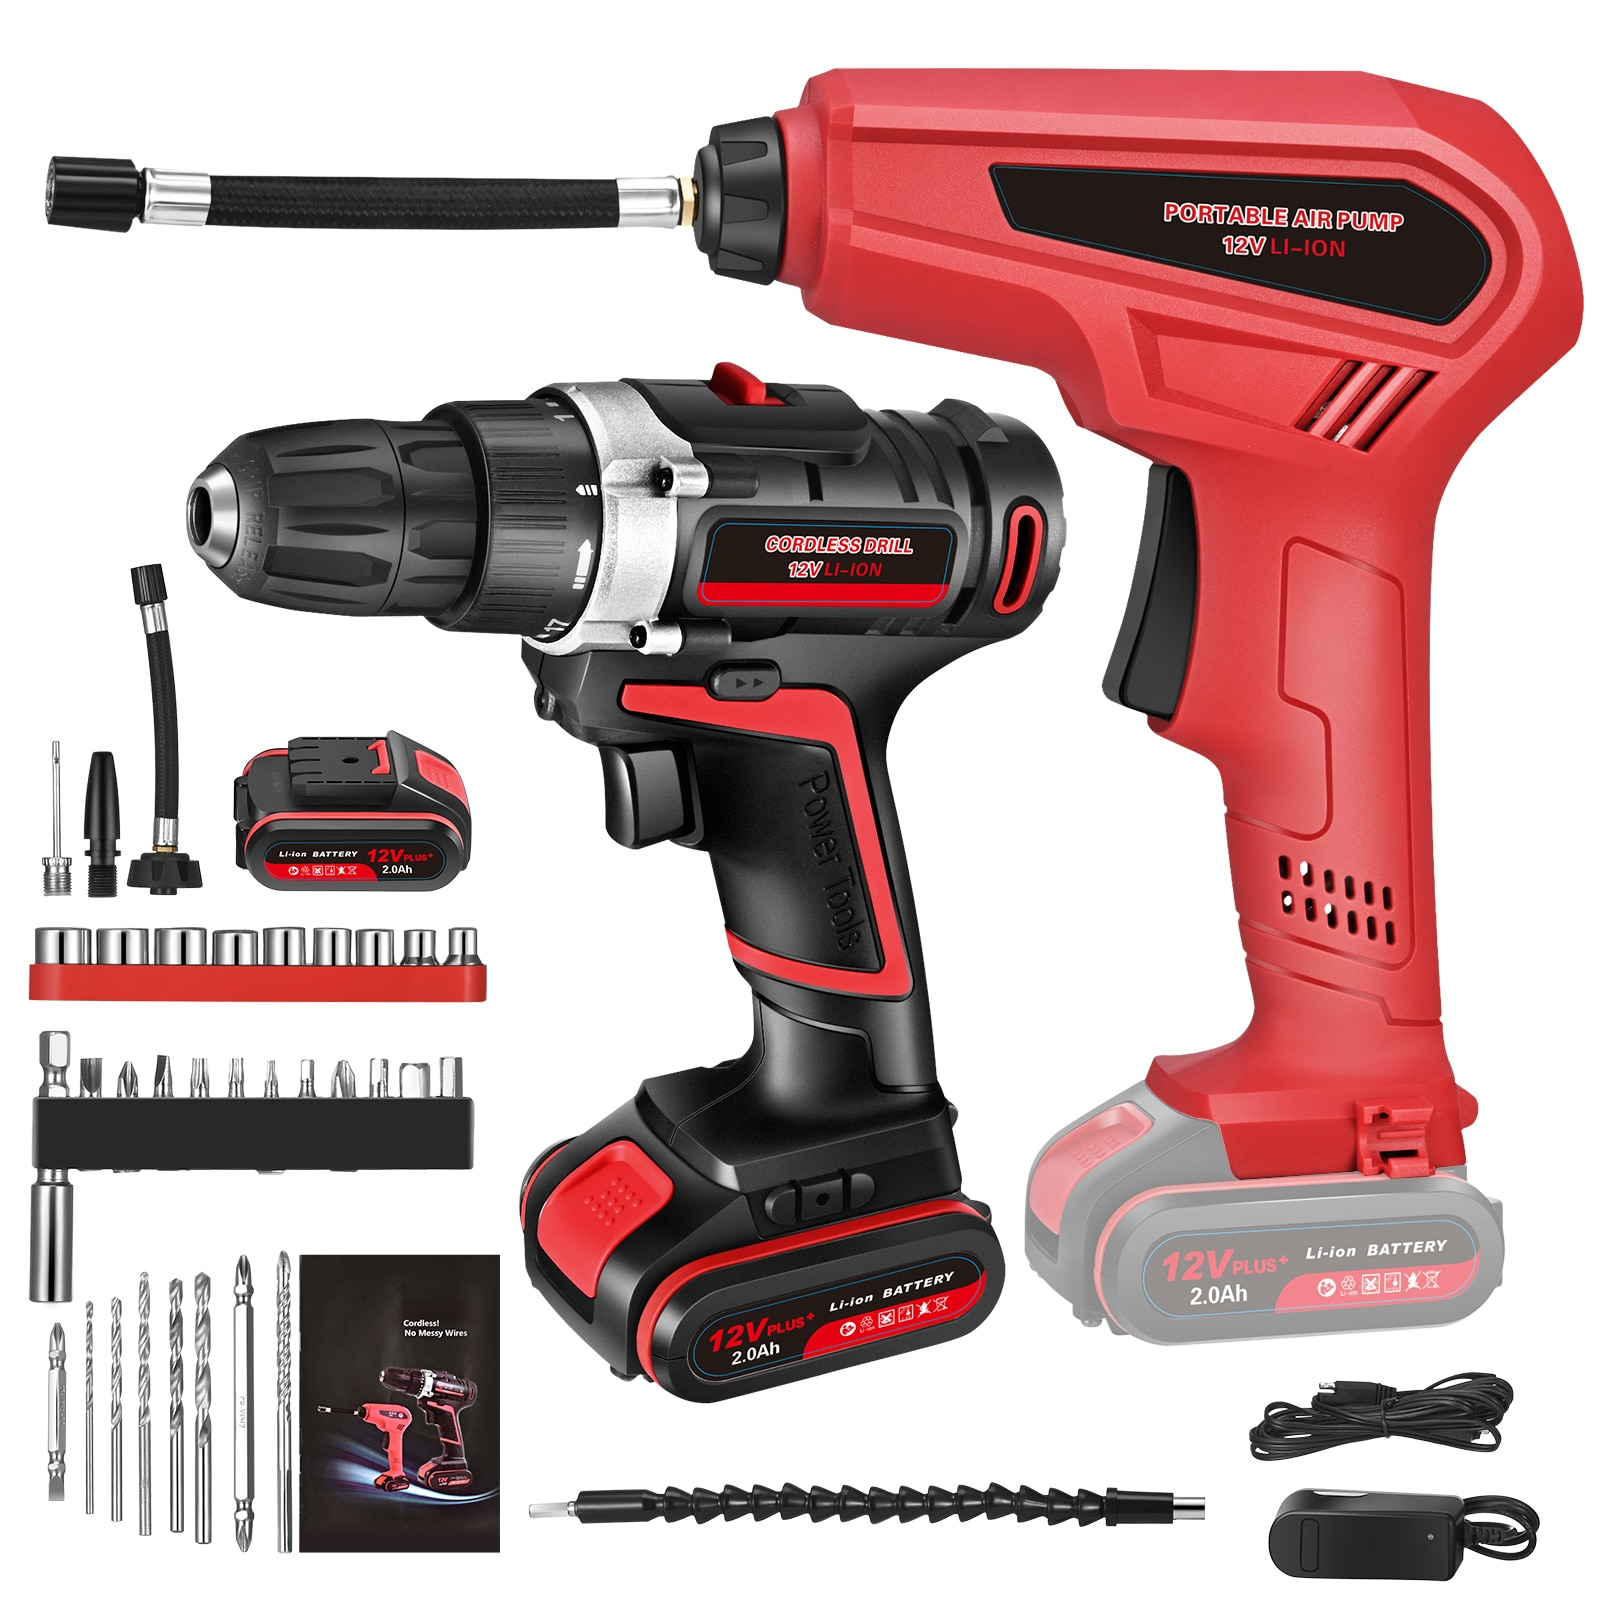 12V Cordless Drill And Tire Pum Portable Torque Electric Drill /driver Kit With 30 Accessories Tire Inflation Pump 3 Nozzles